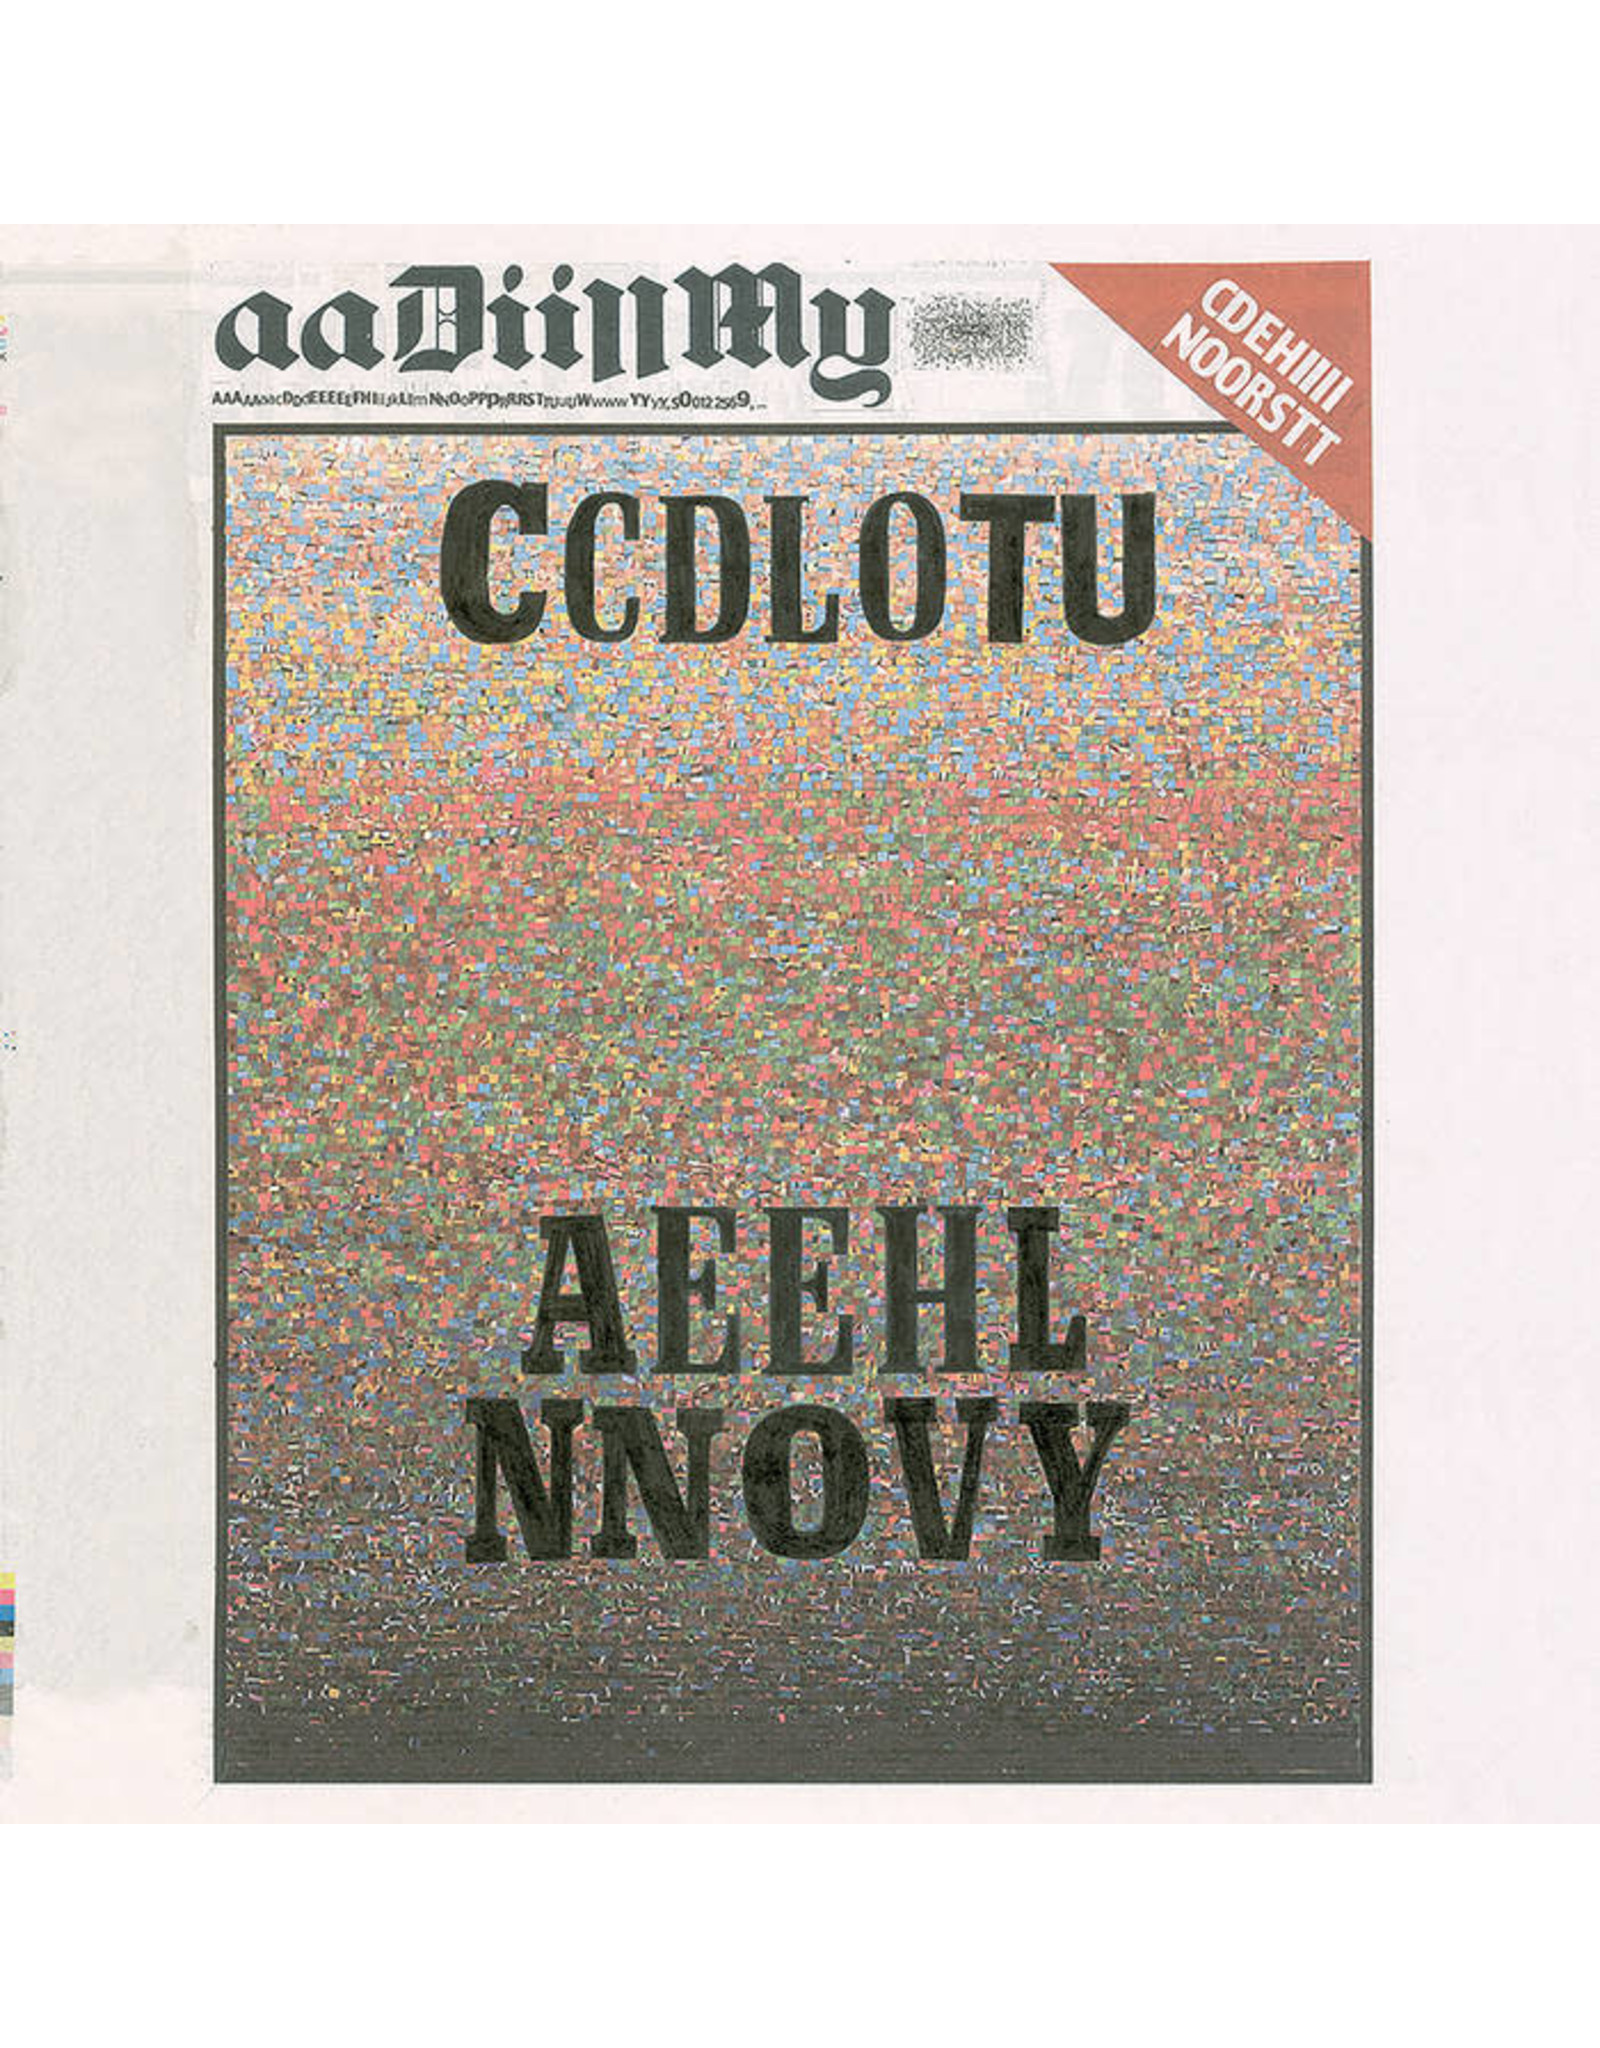 New Vinyl Coldcut - Only Heaven EP 12""